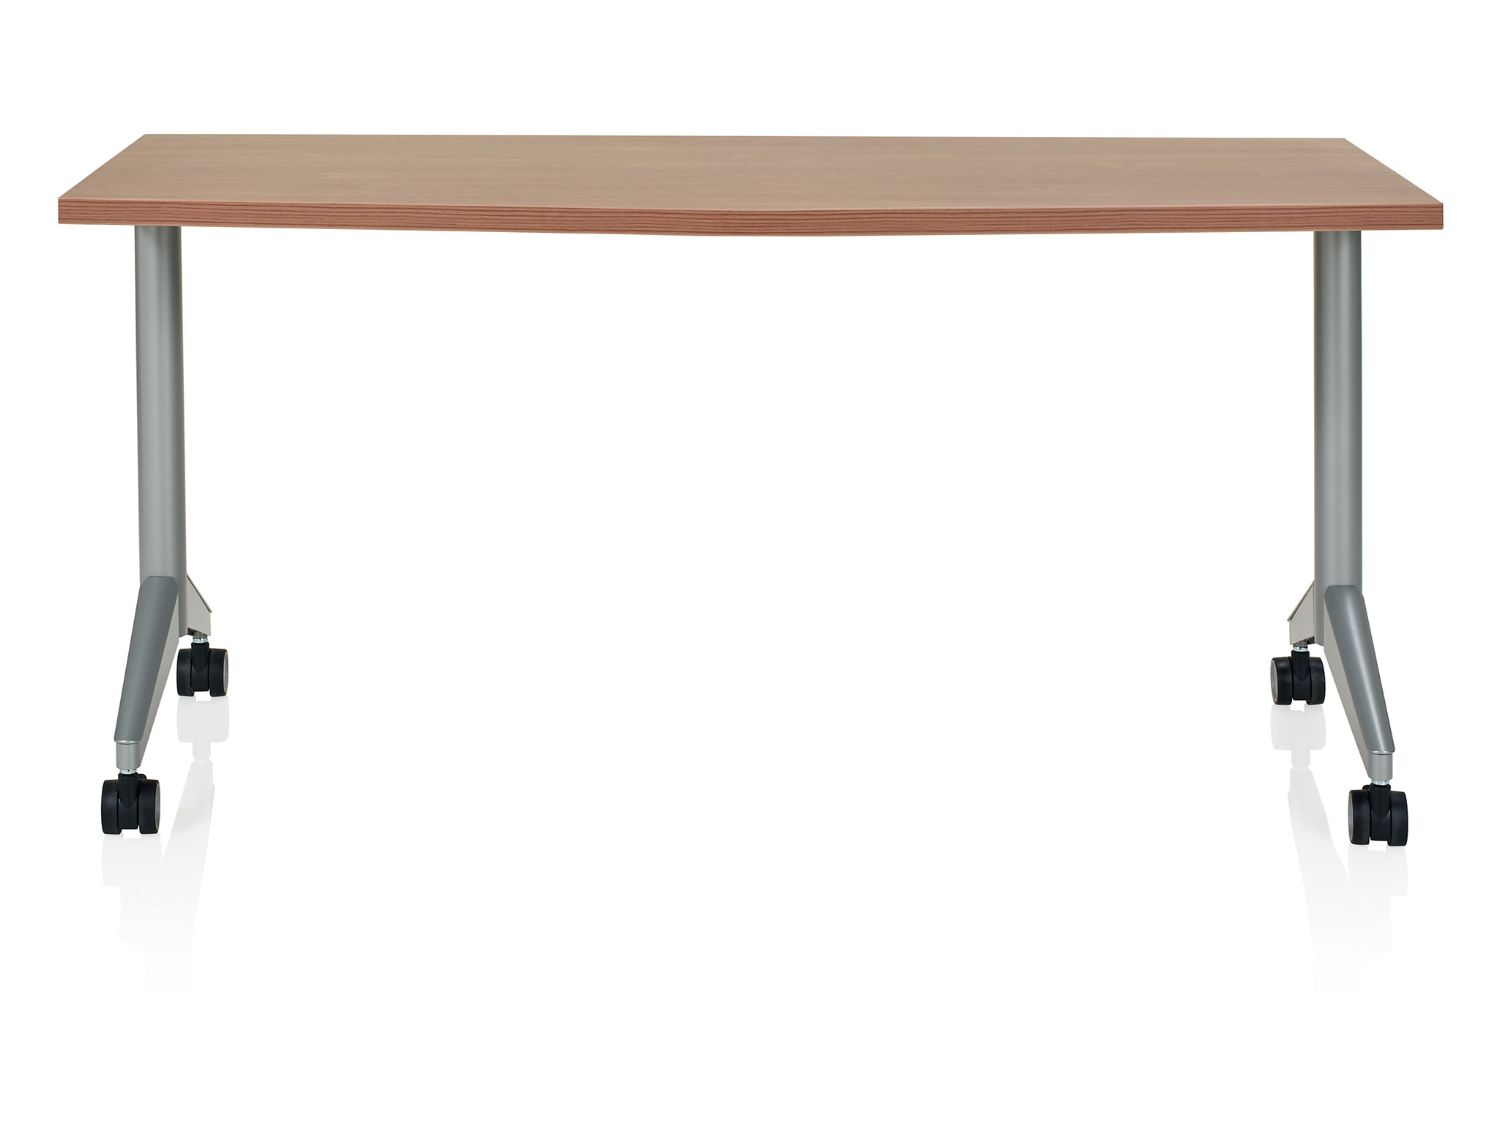 ki pirouette table front view